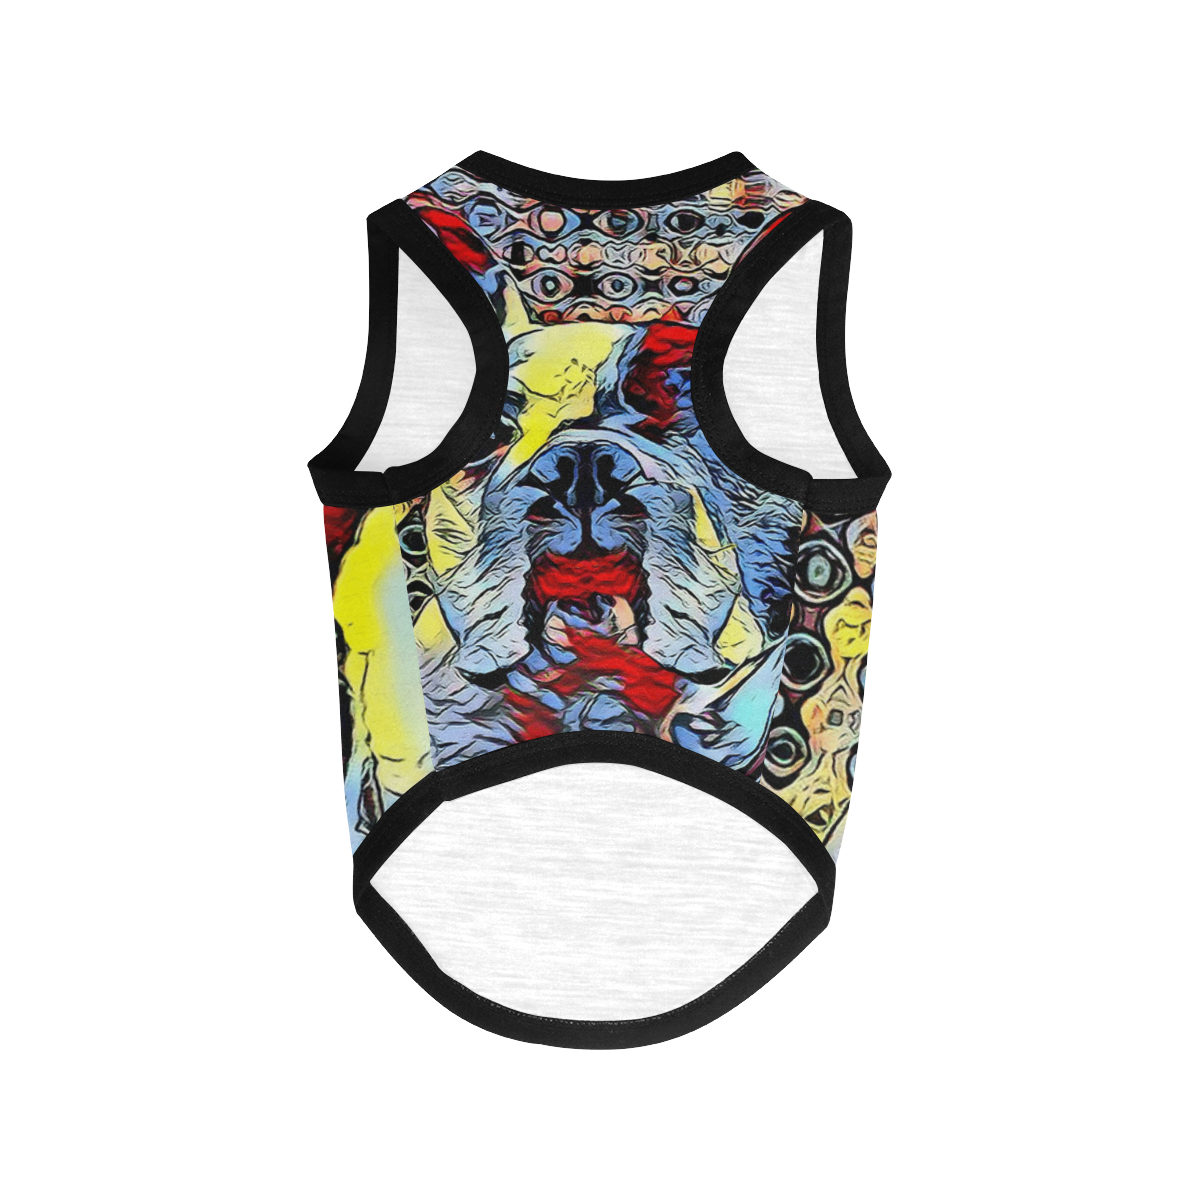 FRENCH BULLDOG ART COLORFUL All Over Print Pet Tank Top